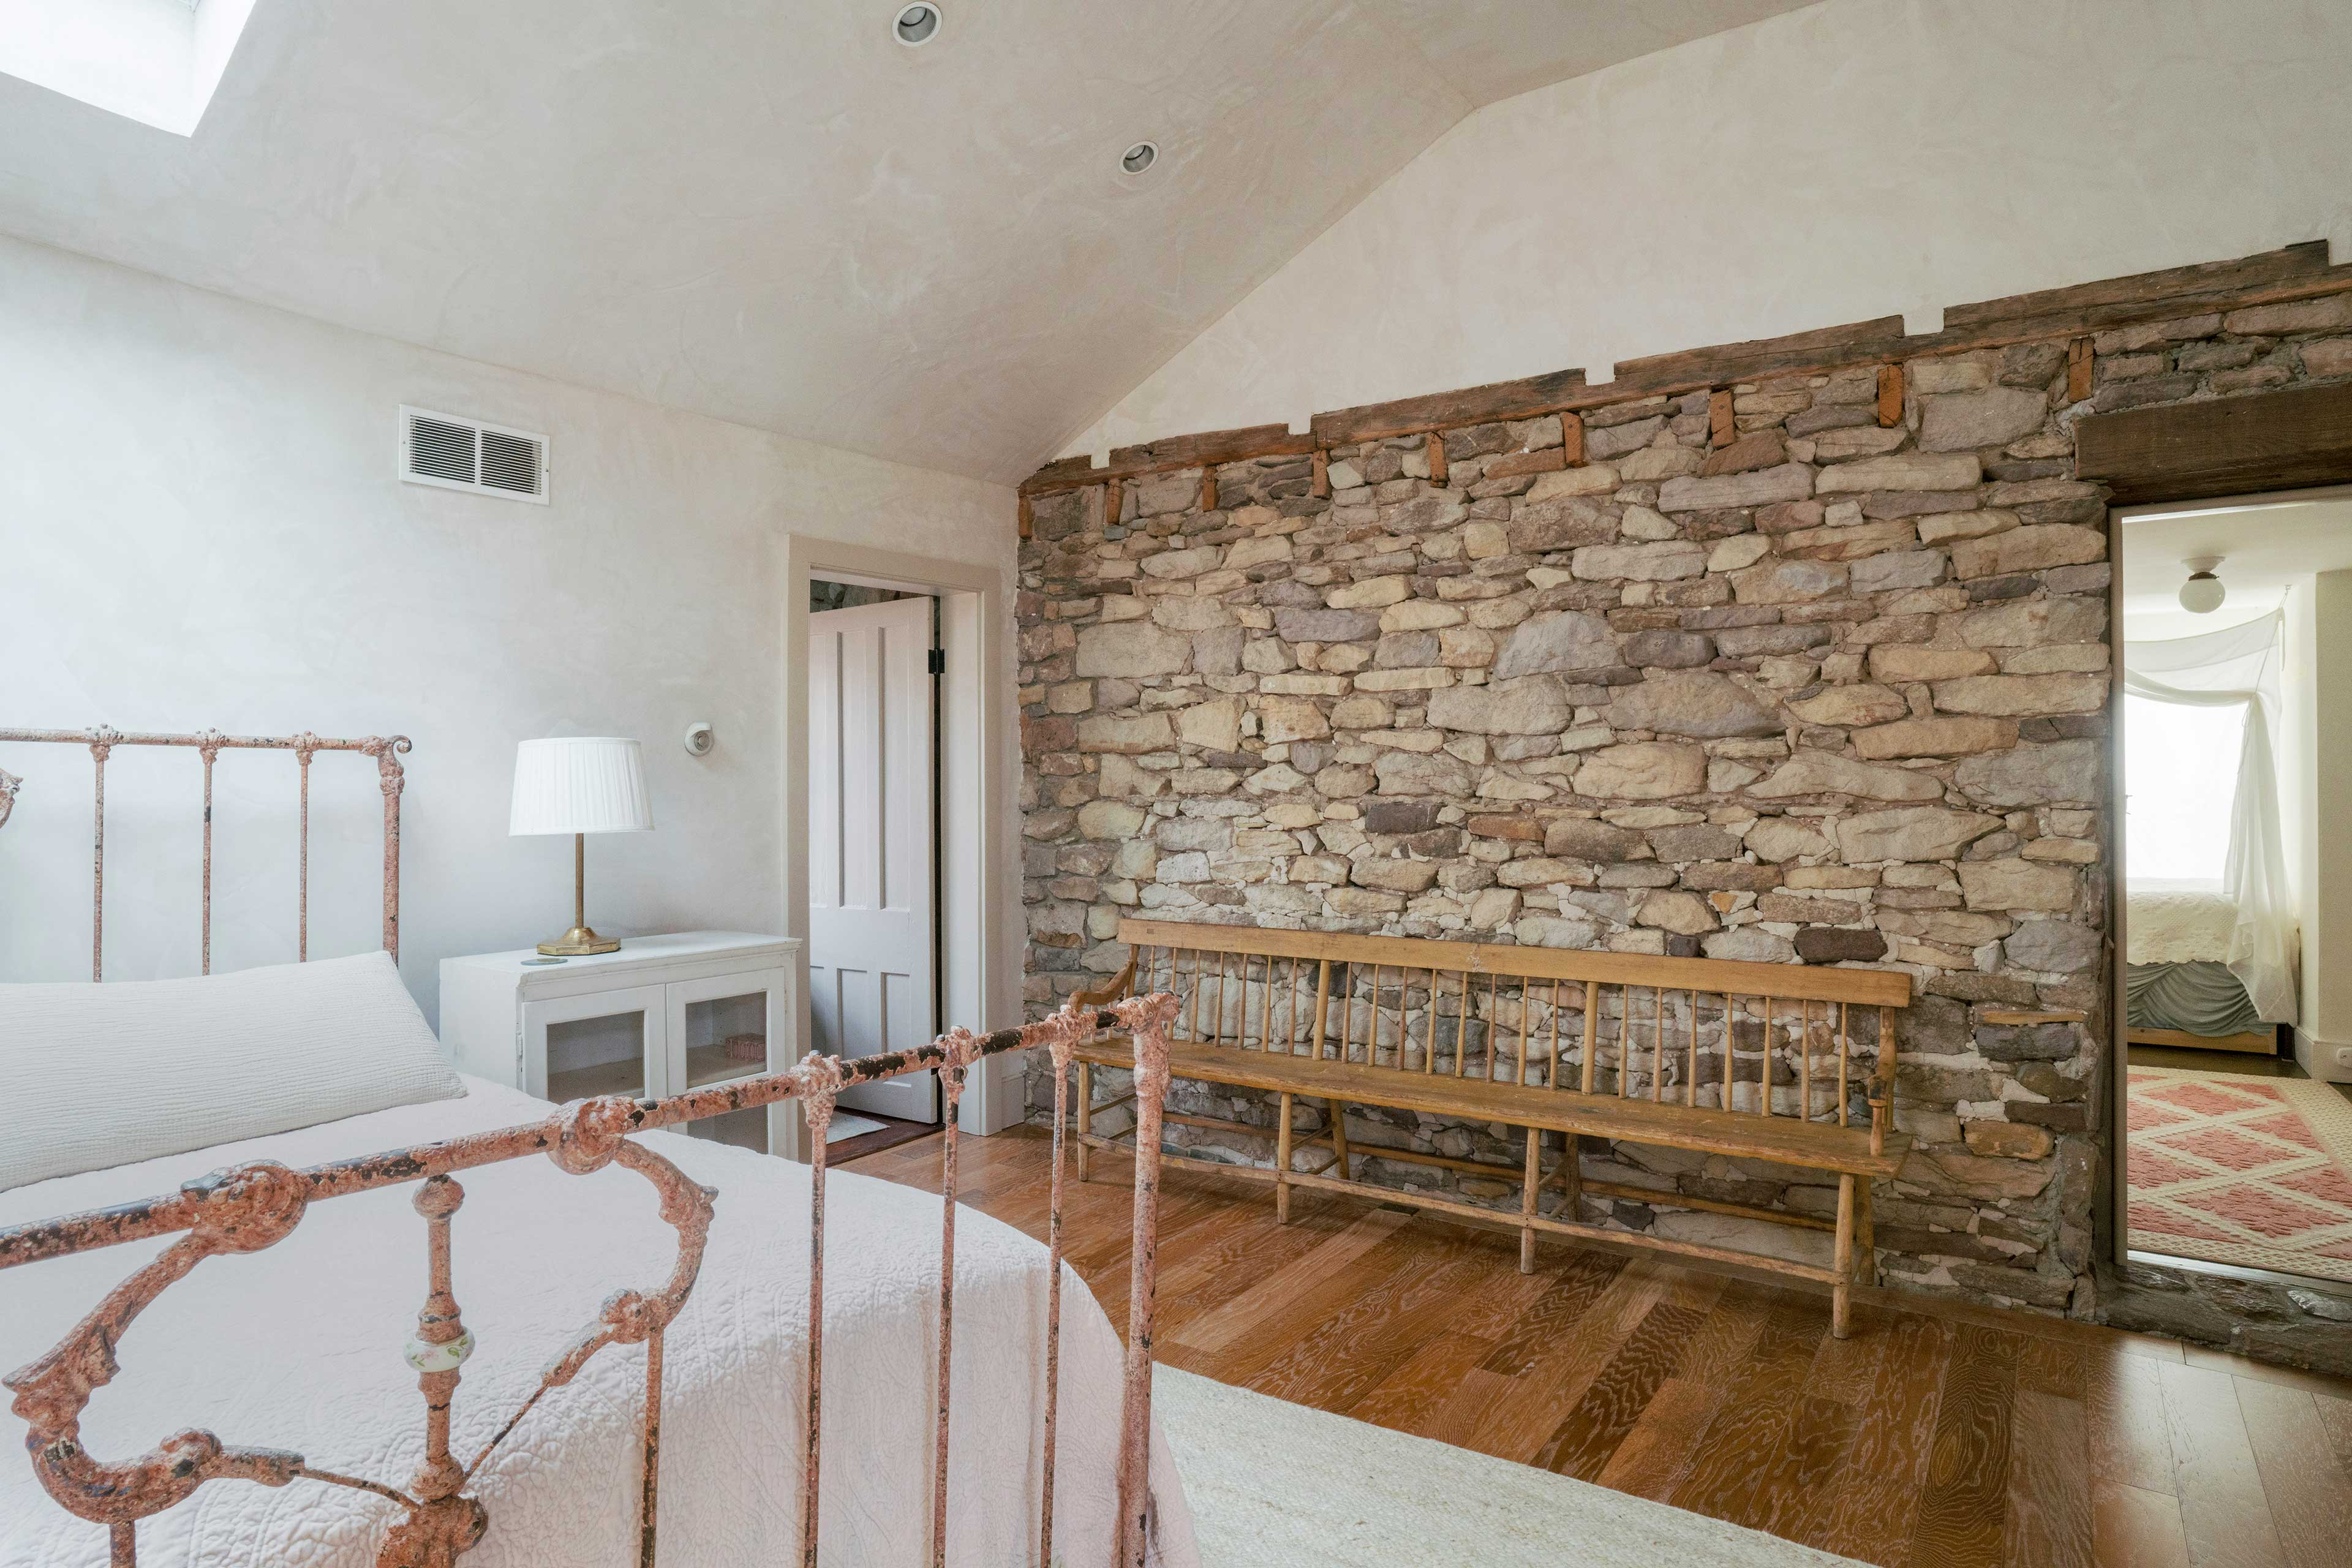 The master bedroom boasts a king-sized bed and original wall section.